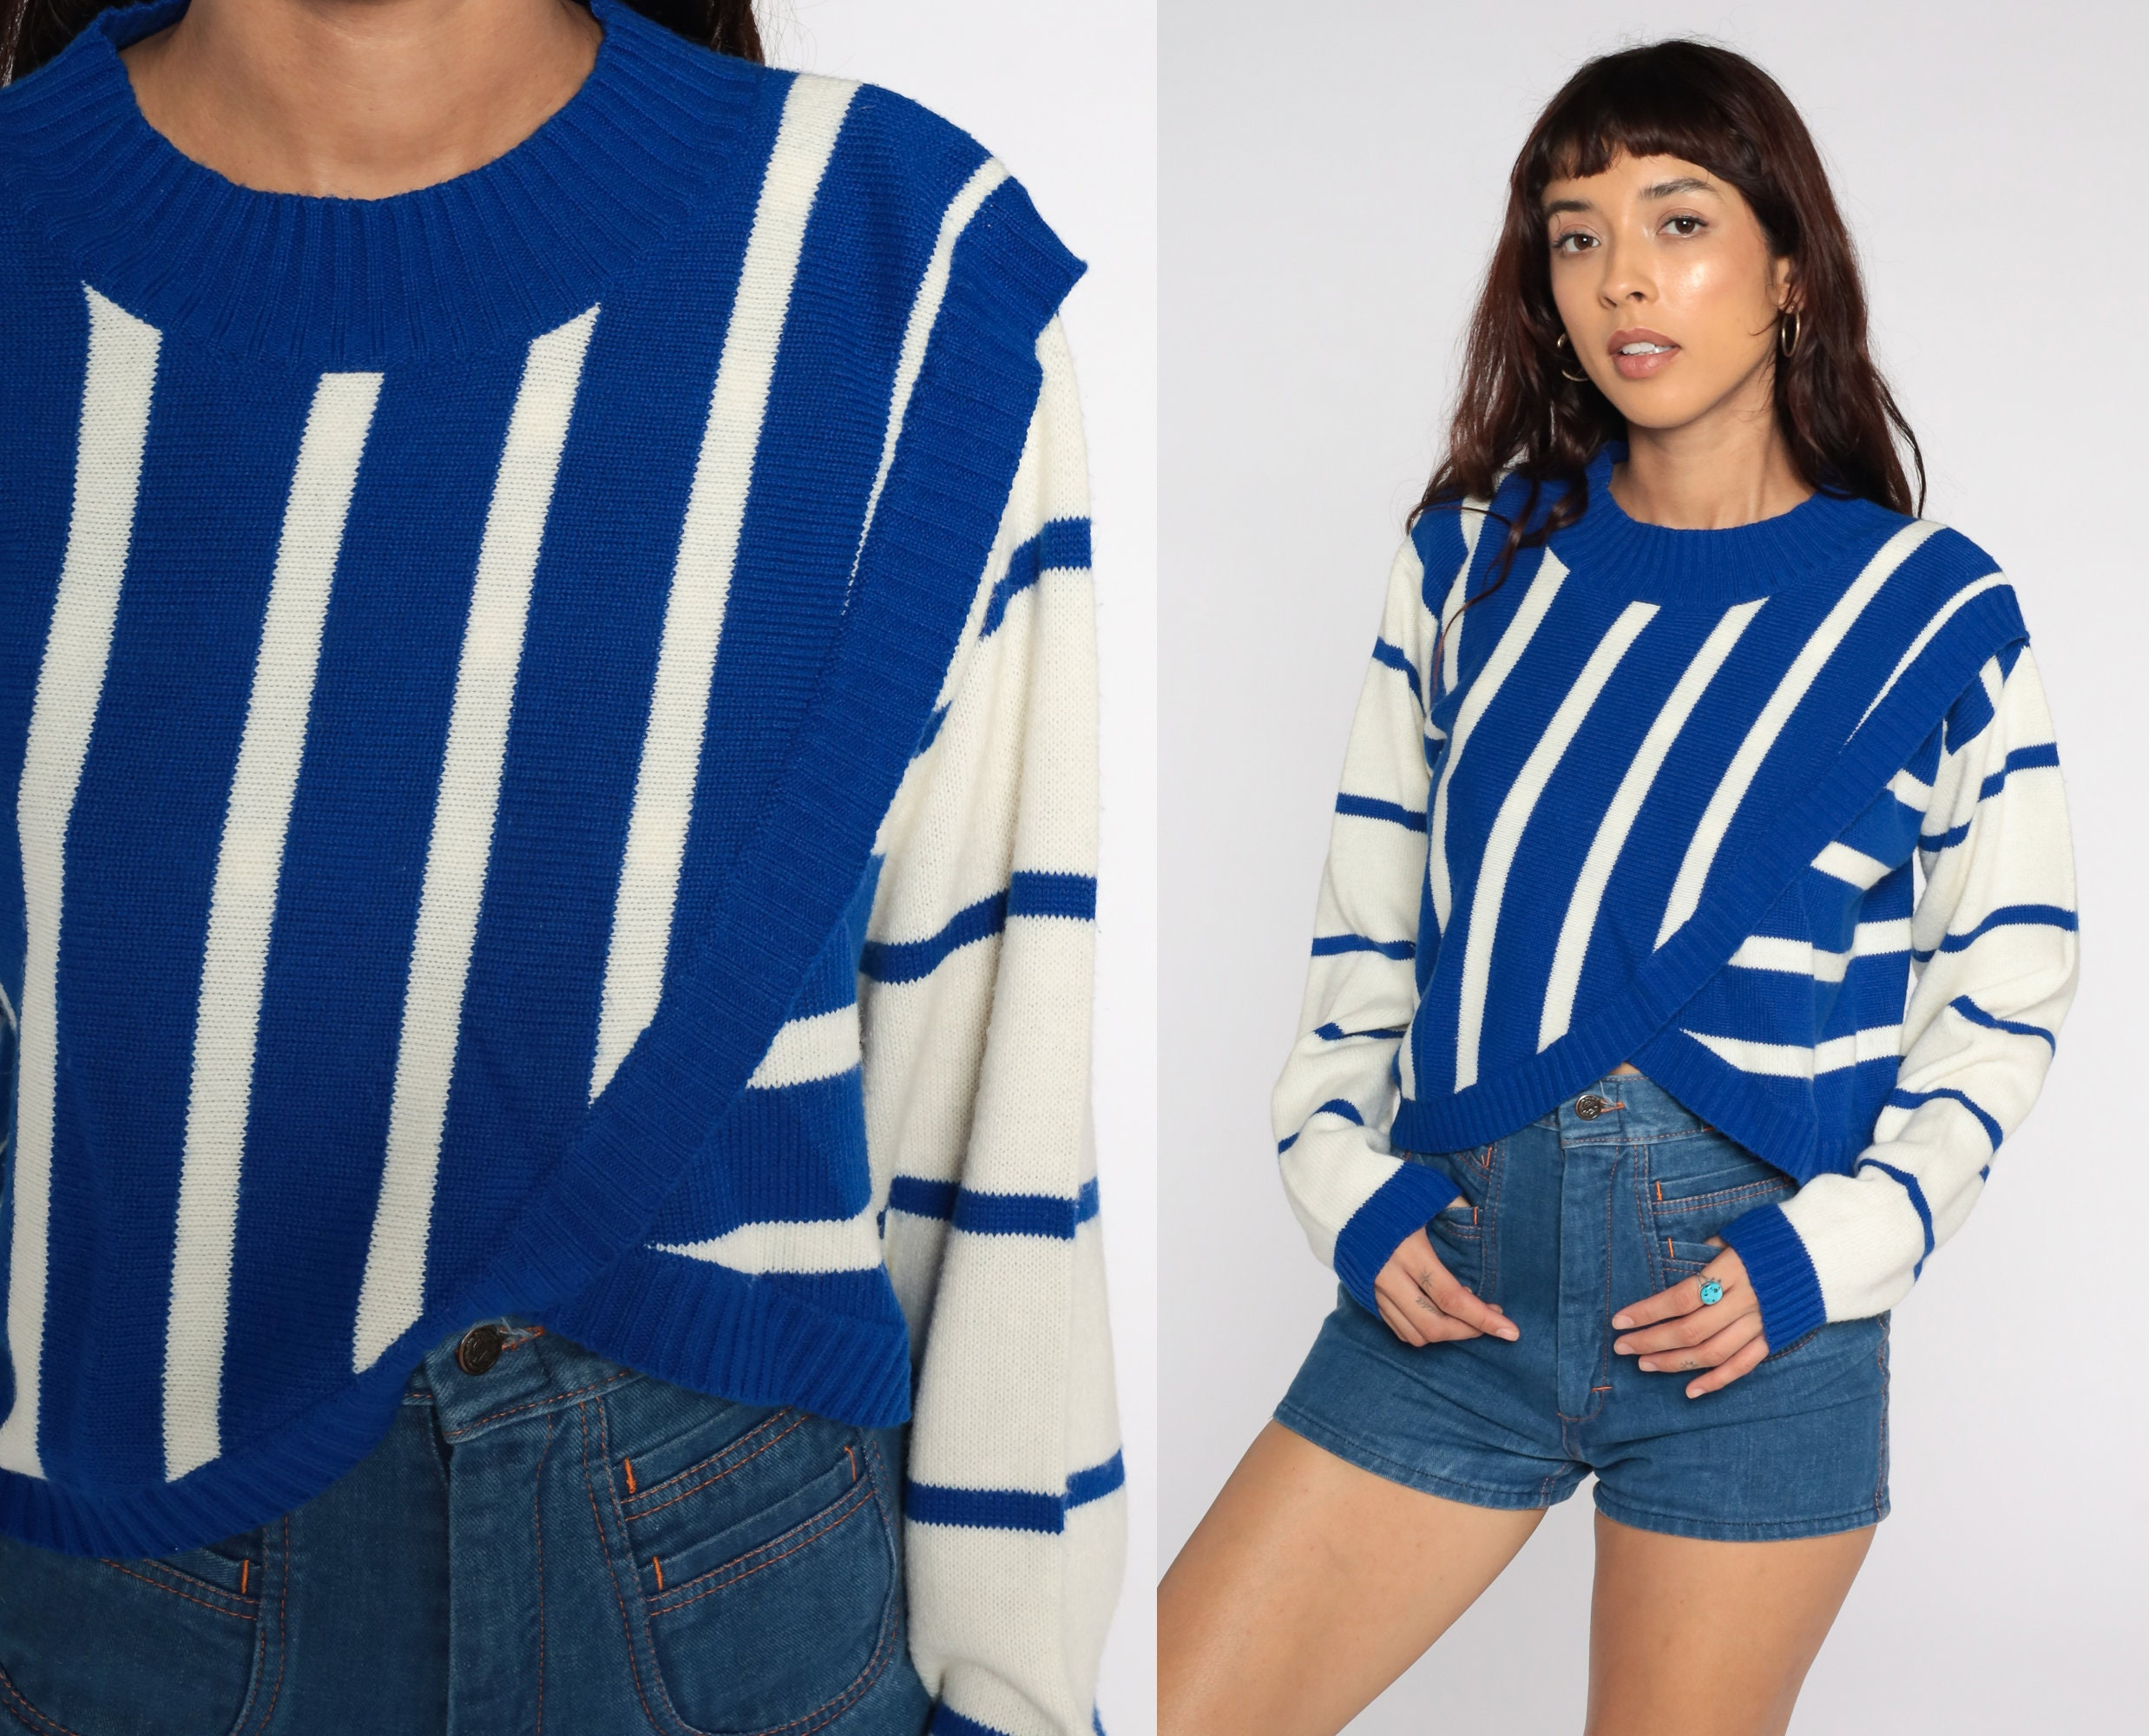 80s Sweatshirts, Sweaters, Vests | Women striped Cropped Sweater 80S Knit Royal Blue White Slouch Short 1980S Jumper Vintage Pullover Retro Small S $44.00 AT vintagedancer.com